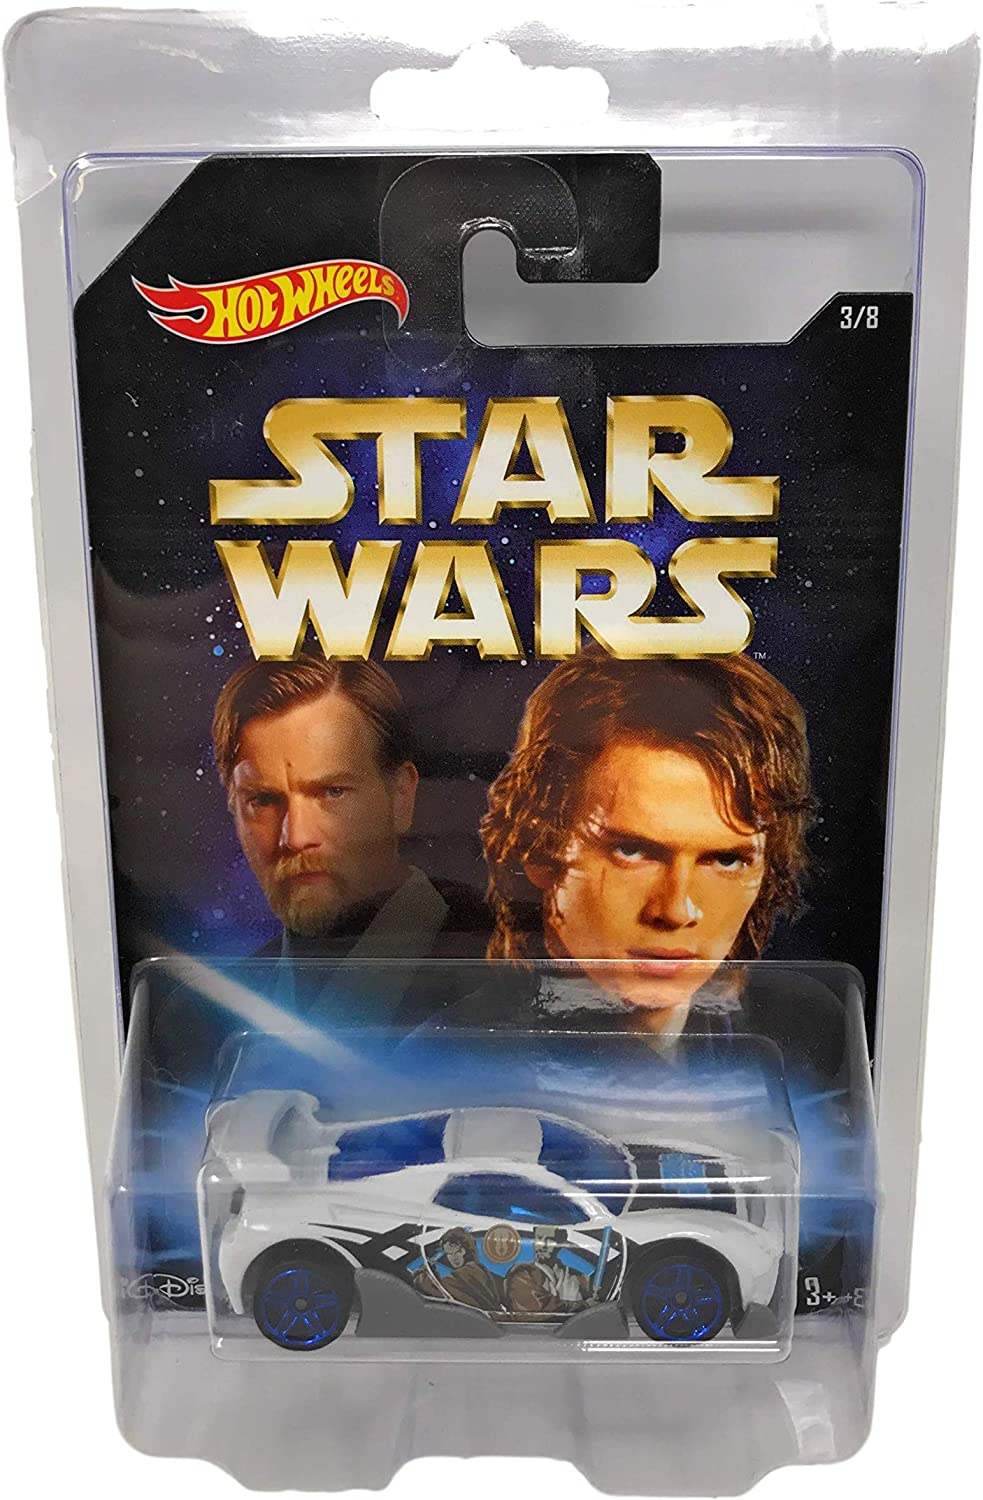 Nozlen Toys Bundle Hot Wheels Star Wars Master and Apprentice Exclusive 8 Car Set Plus 8 Protective Cases for Diecast